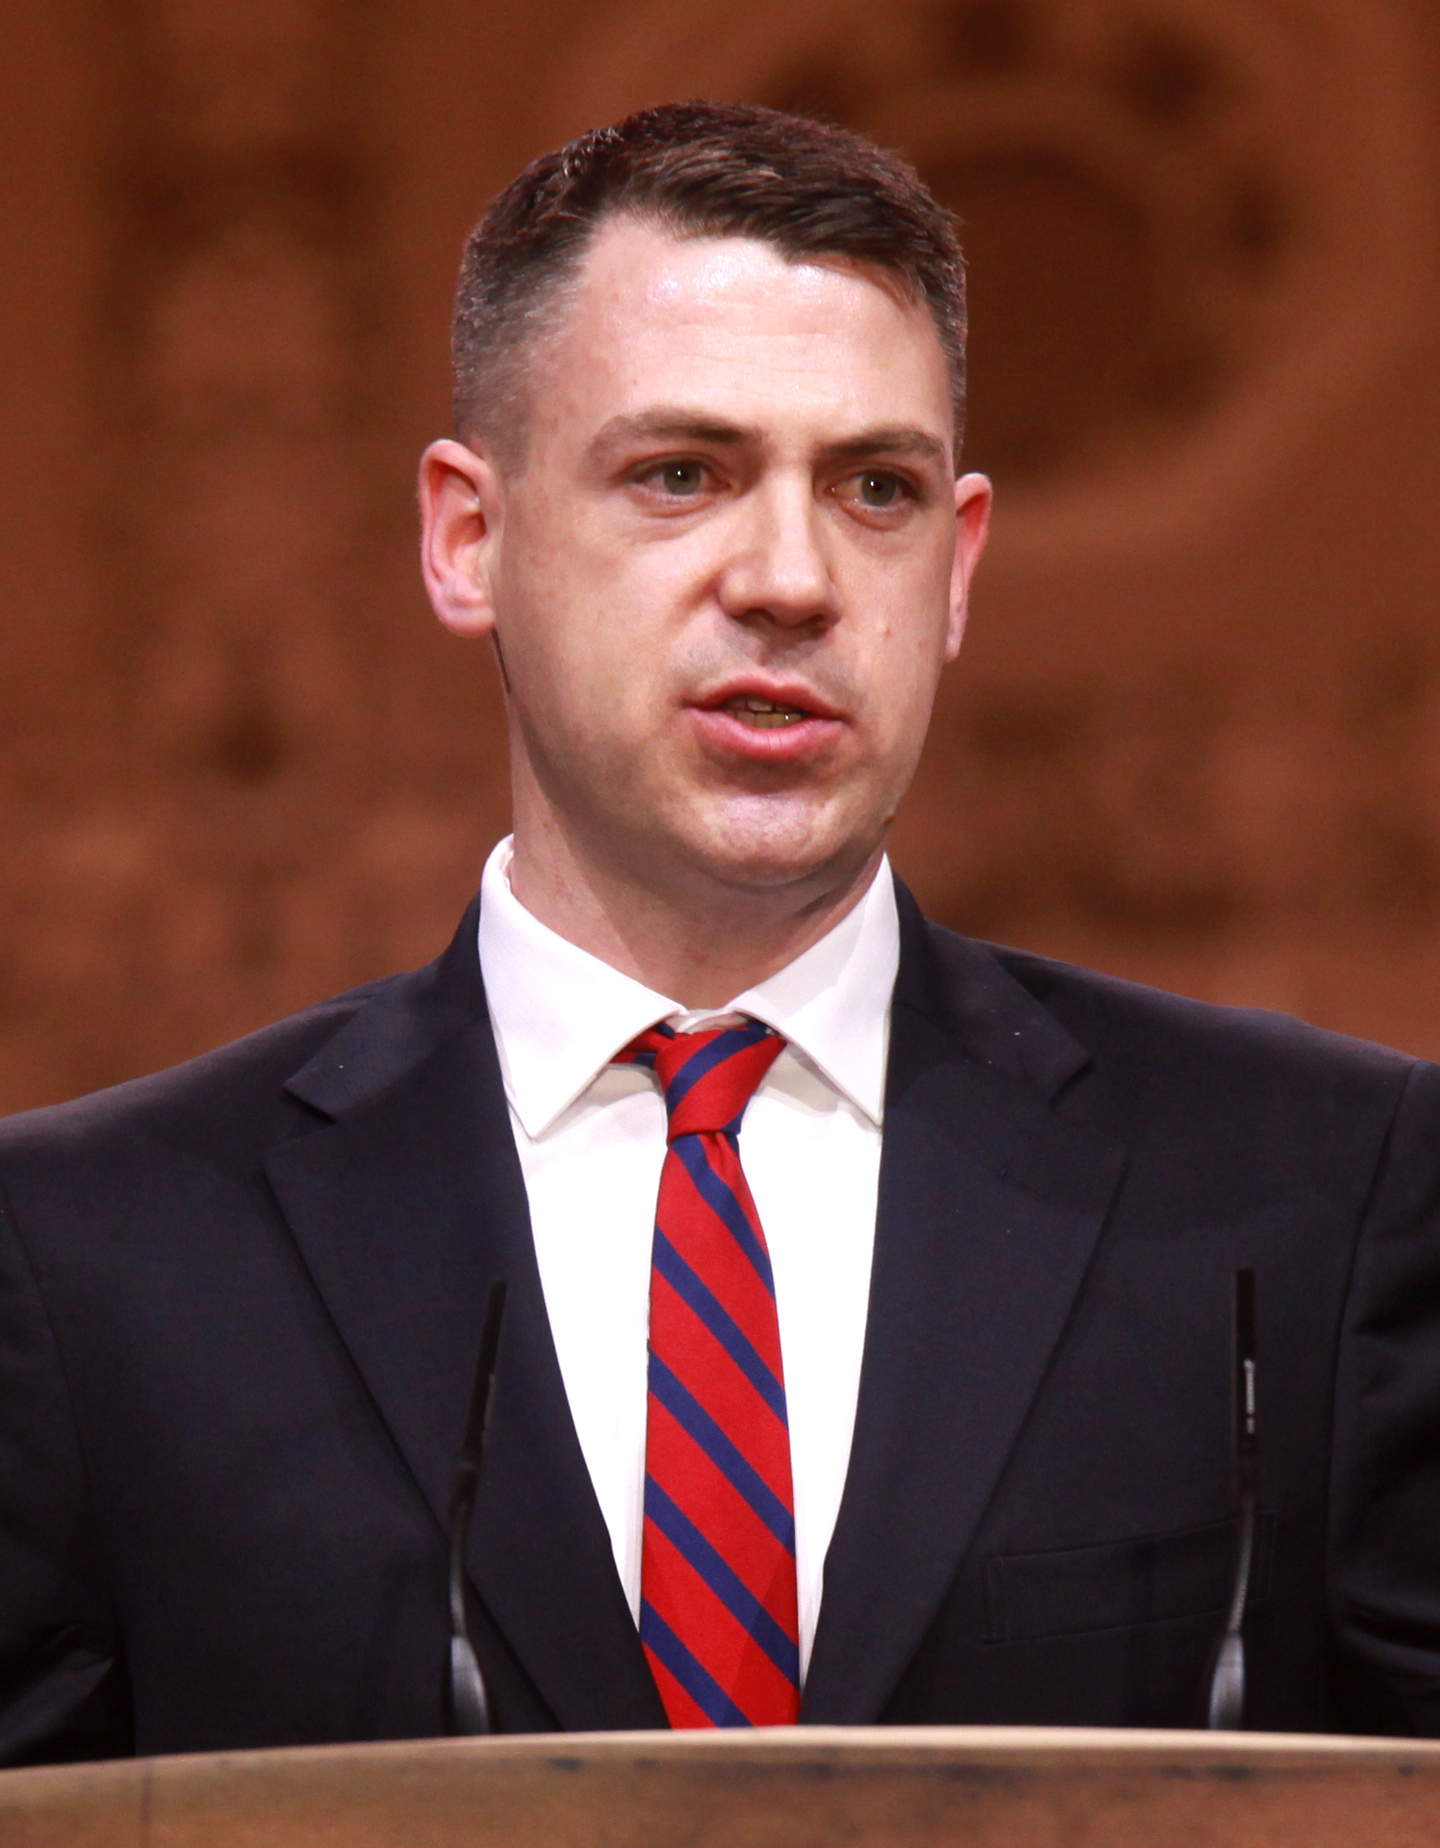 Representative Jim Banks (R-IN-3)   Cosponsor of  H.R. 525 Cuba Agricultural Exports Act,   H.R. 442 Cuba Trade Act  &  H.R. 351 Freedom for Americans to Travel to Cuba Act